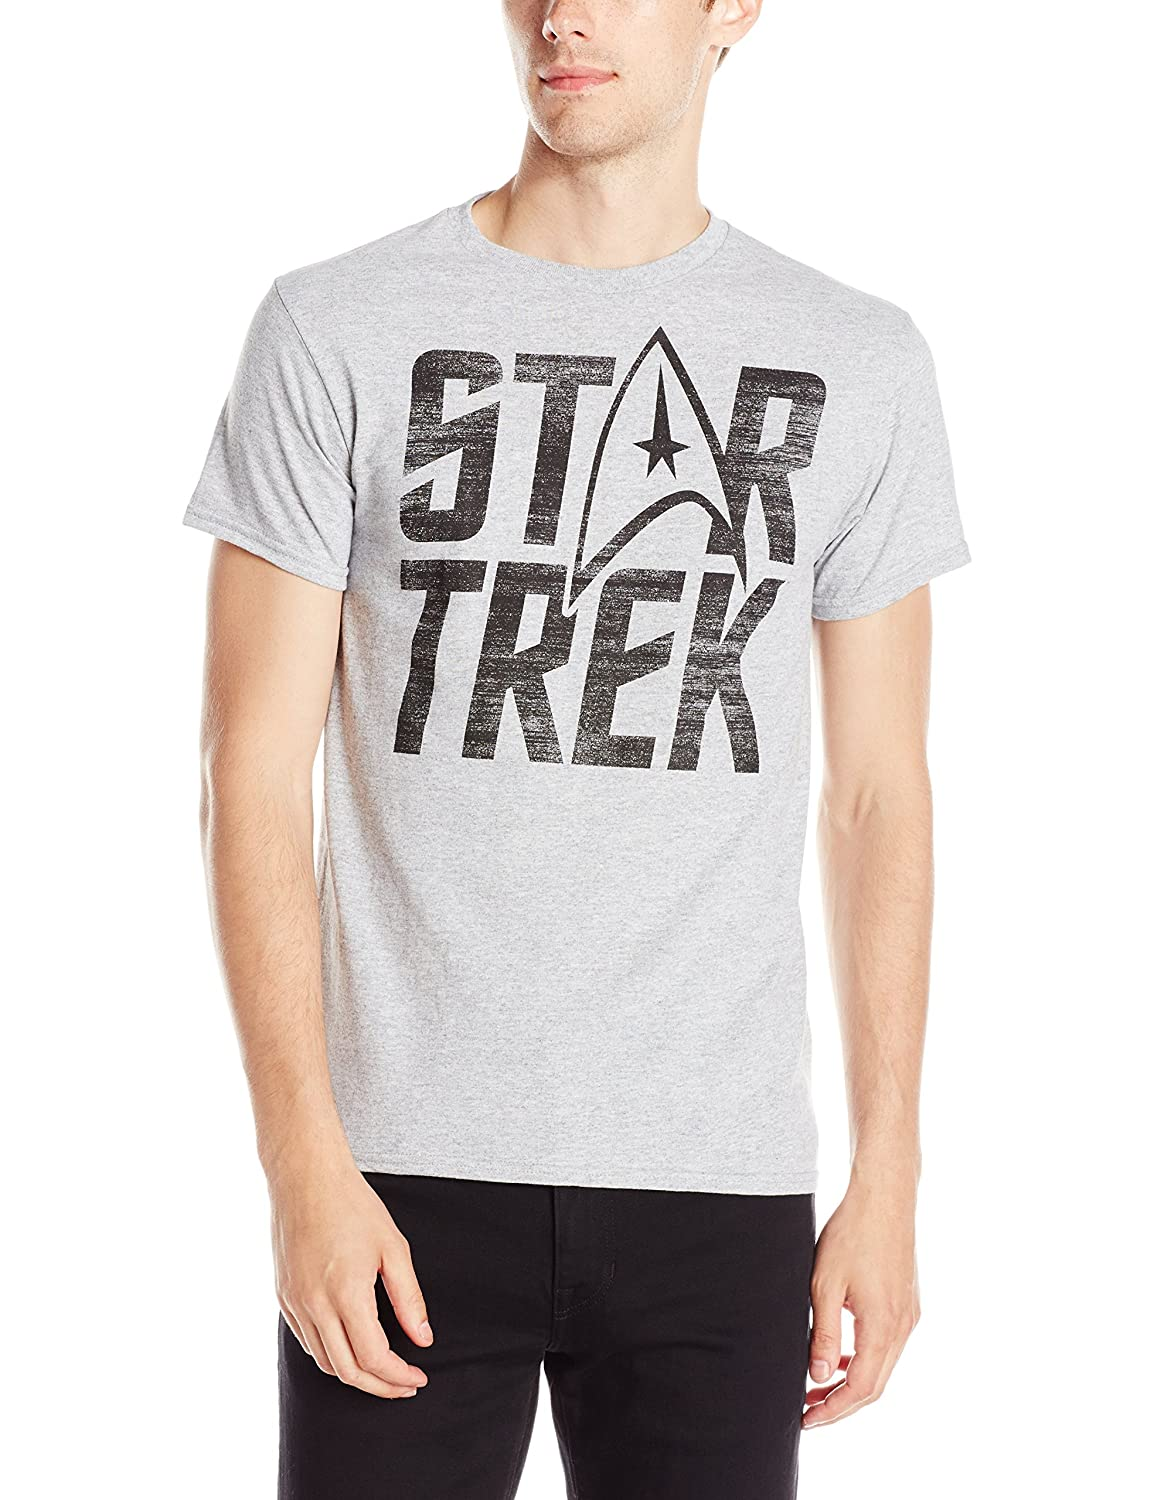 Hybrid Men's Star Trek Logo T-Shirt